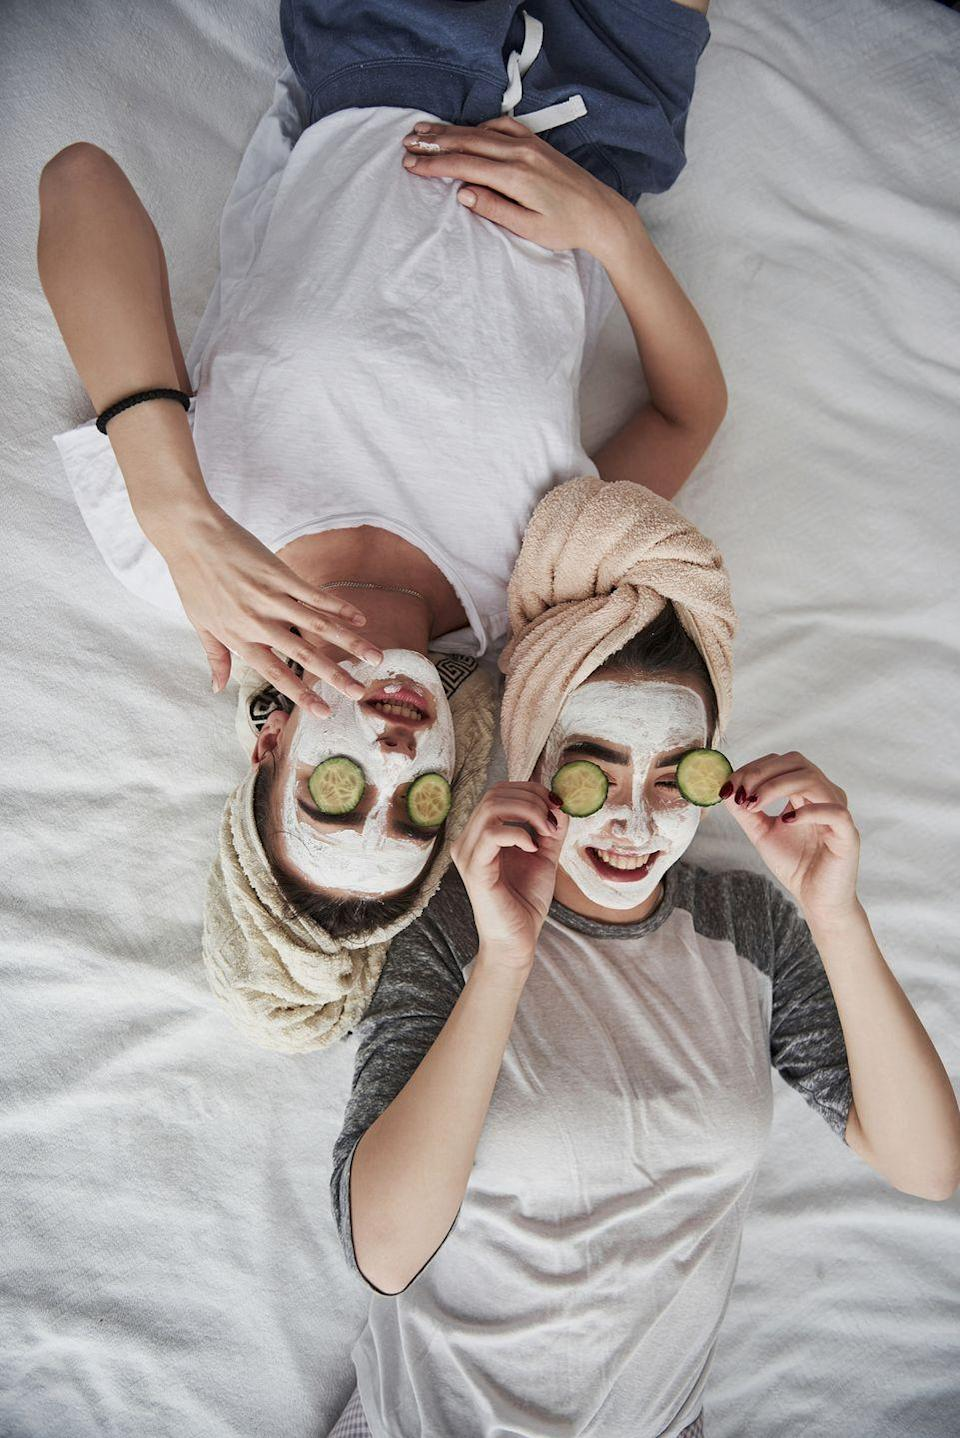 """<p>Enjoy a spa day built for your budget by throwing a pampering fest right in your home. Break out the face masks, bubble bath, and prosecco for a day dedicated to forgetting all your worries.</p><p><a class=""""link rapid-noclick-resp"""" href=""""https://www.amazon.com/Seven-Apparel-Collection-Herringbone-Textured/dp/B008I25J7G/?tag=syn-yahoo-20&ascsubtag=%5Bartid%7C10050.g.805%5Bsrc%7Cyahoo-us"""" rel=""""nofollow noopener"""" target=""""_blank"""" data-ylk=""""slk:SHOP BATHROBES"""">SHOP BATHROBES</a></p>"""